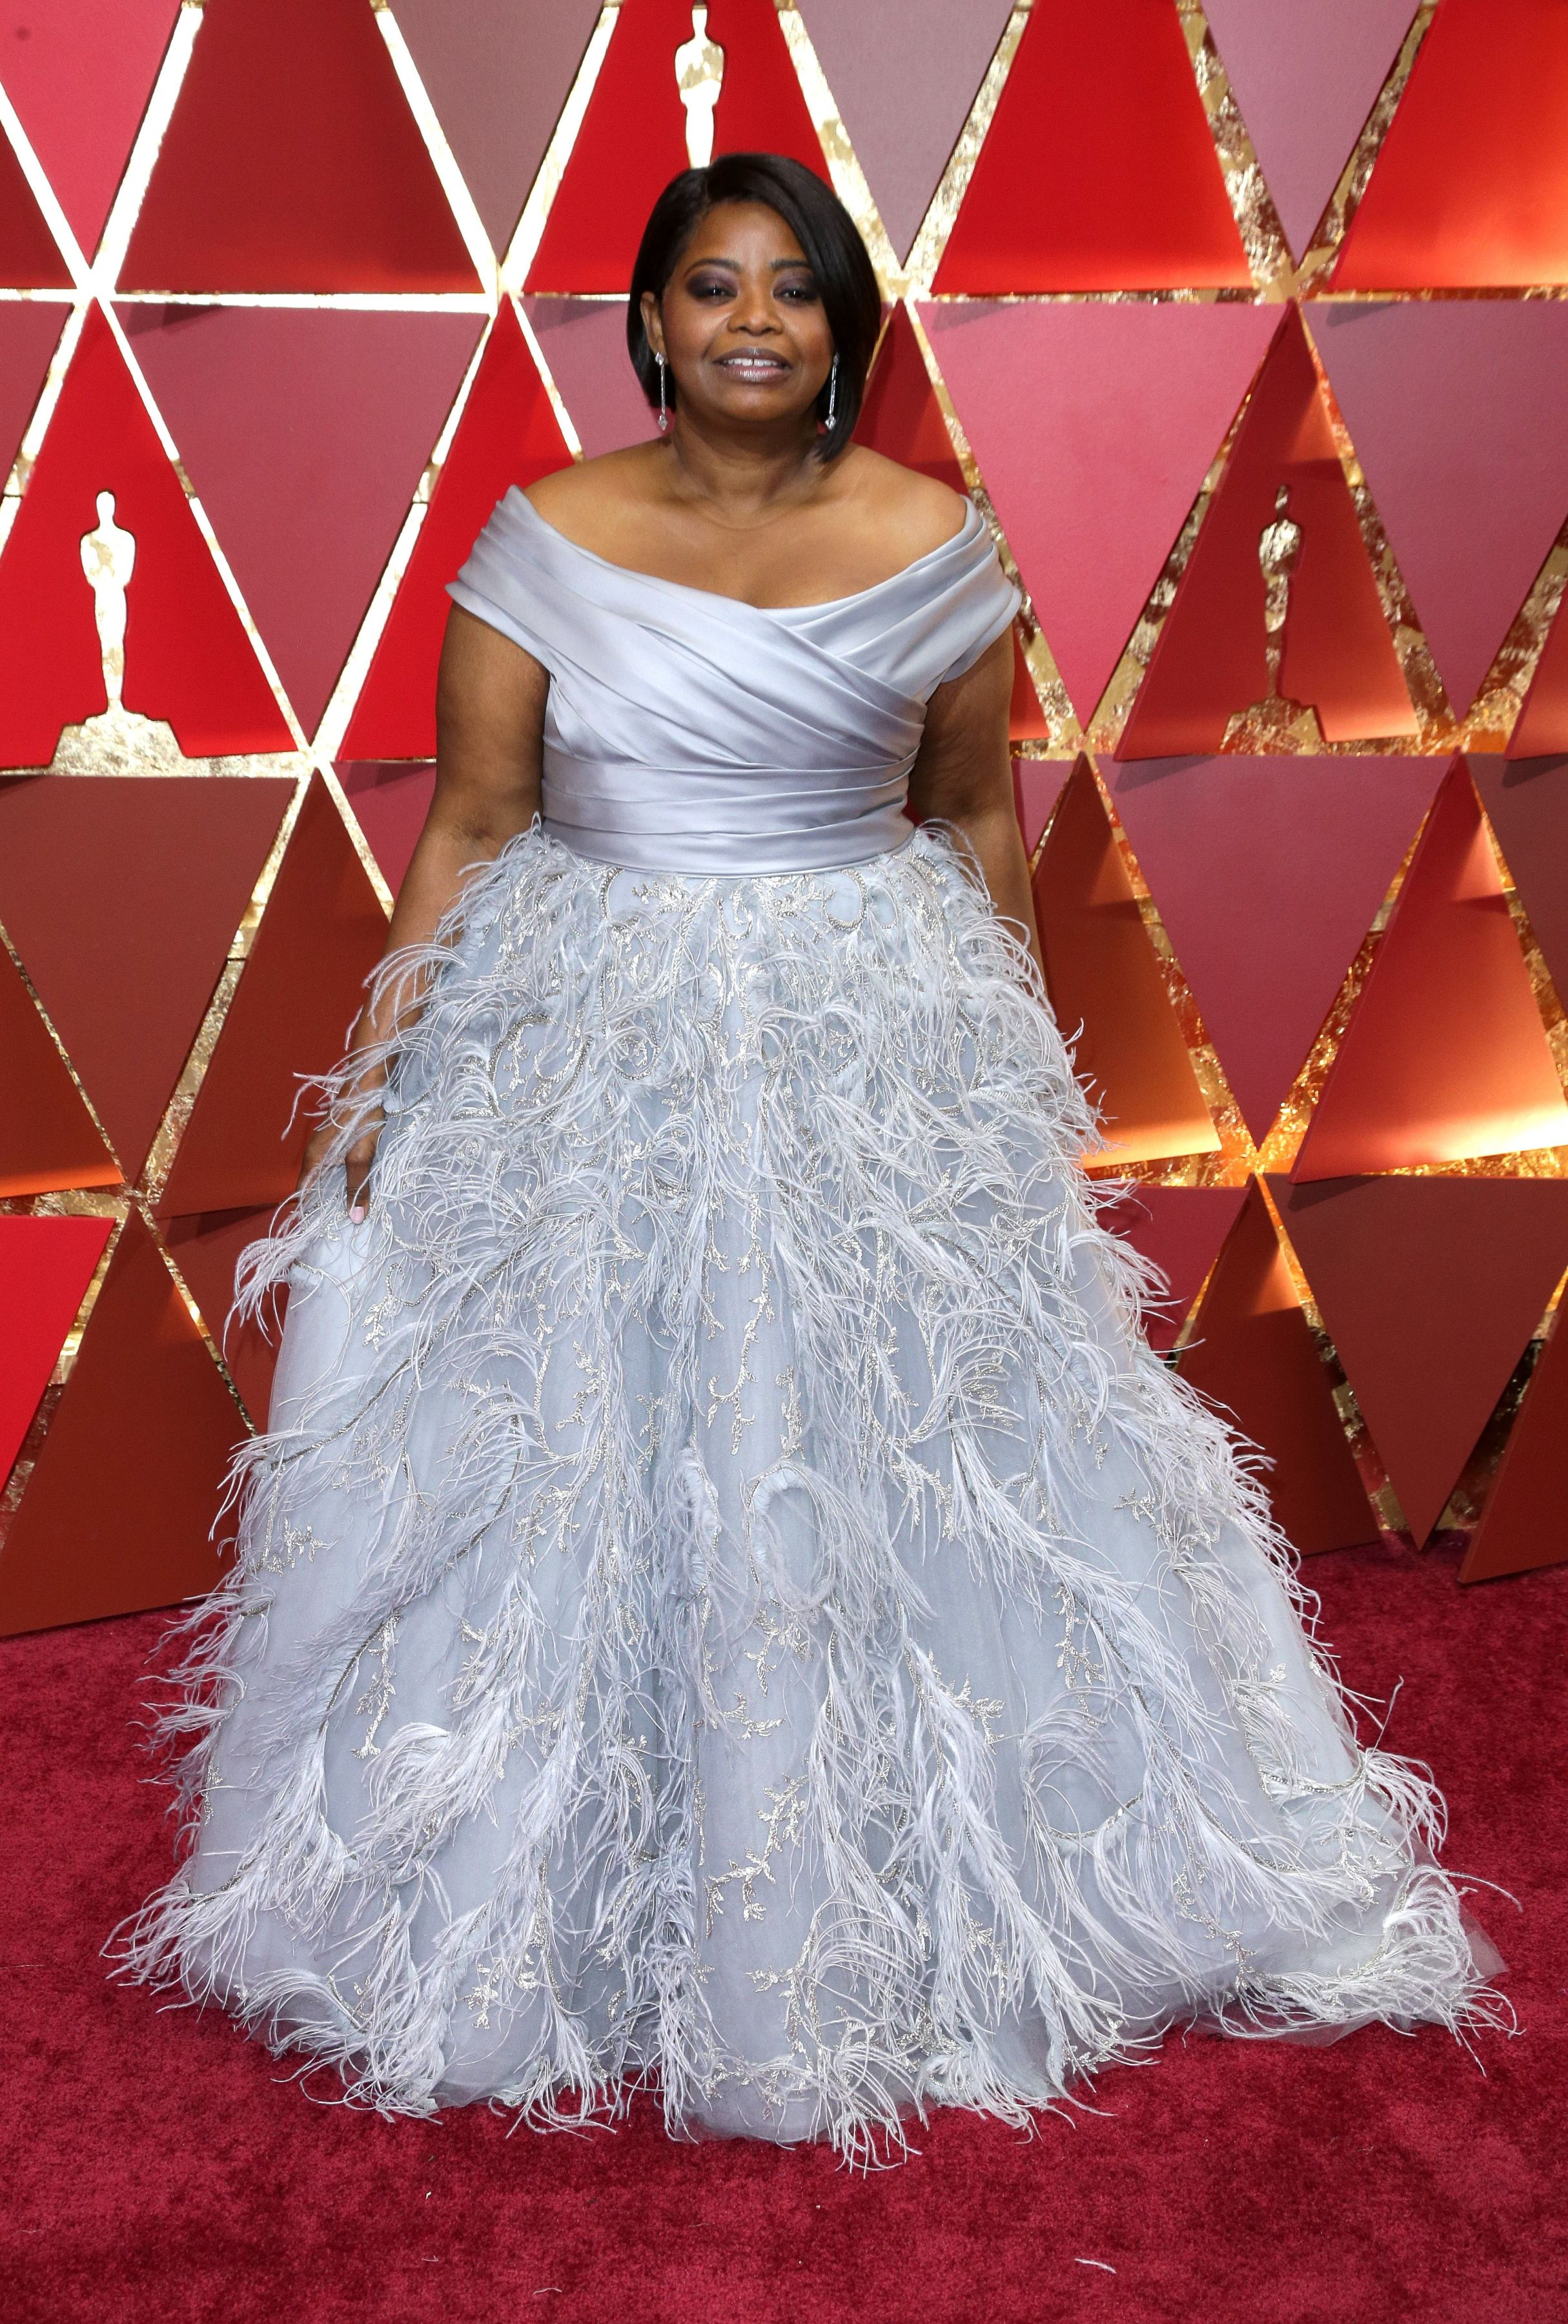 Mandatory Credit: Photo by Jim Smeal/BEI/Shutterstock (8434881kw) Octavia Spencer 89th Annual Academy Awards, Arrivals, Los Angeles, USA - 26 Feb 2017